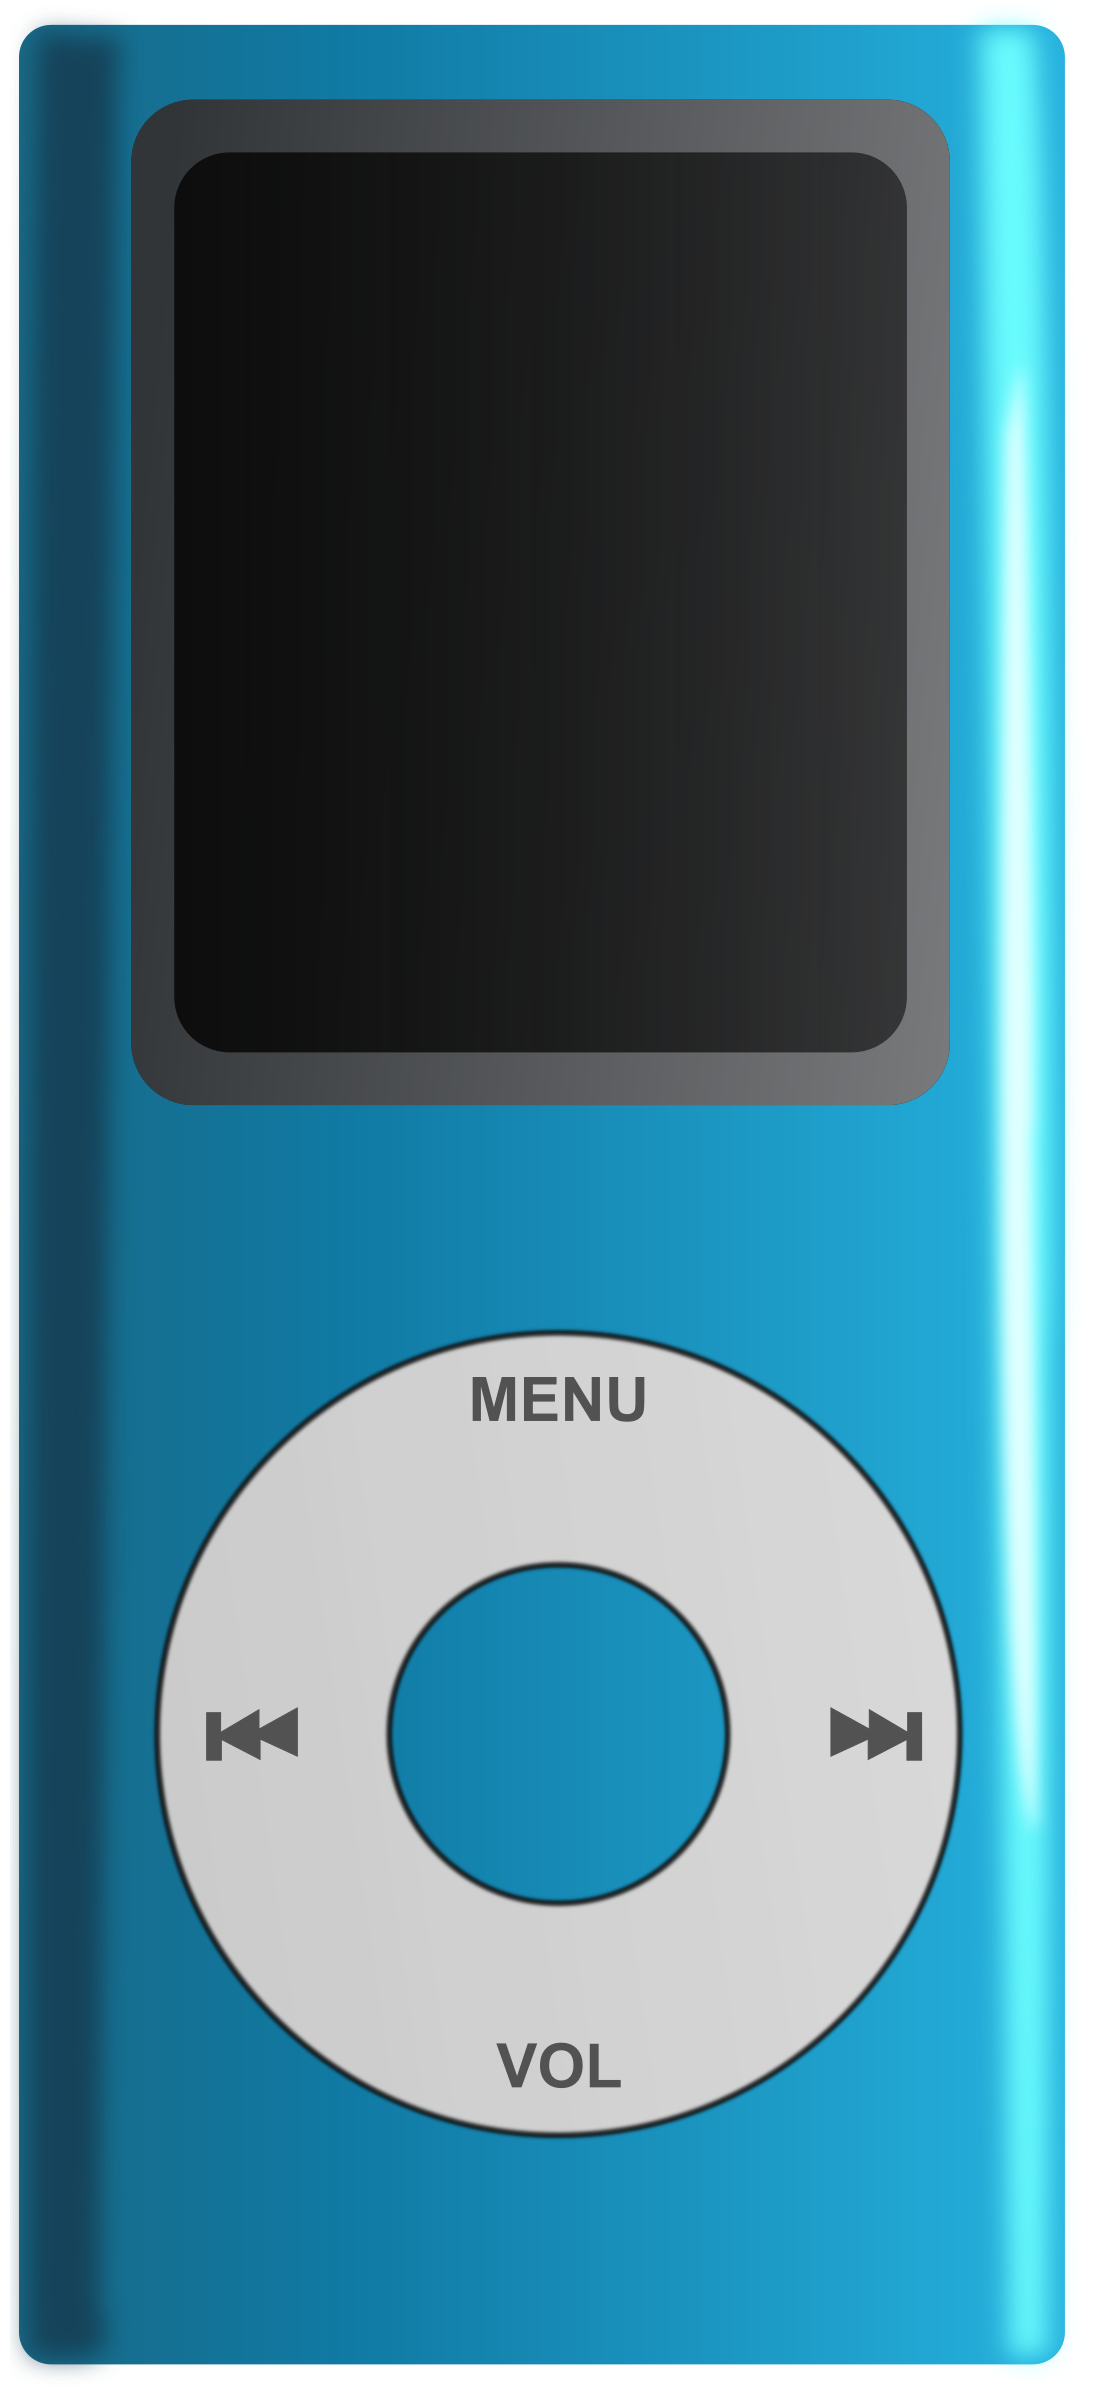 MP4 player by Ramchand